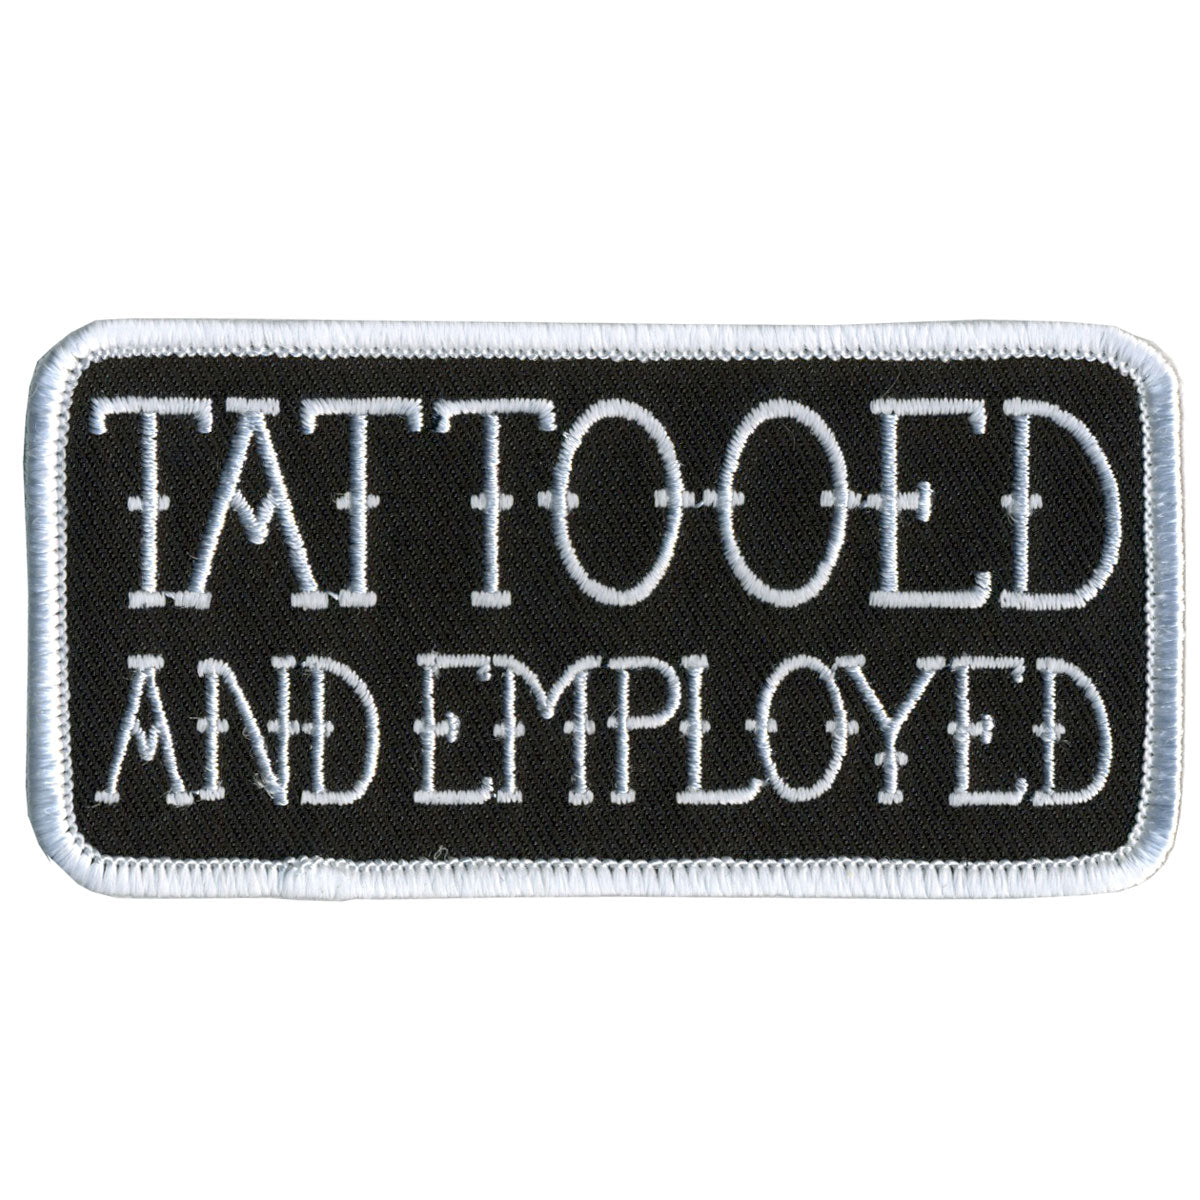 "Hot Leathers Tattooed and Employed 4"" x 2"" Patch"